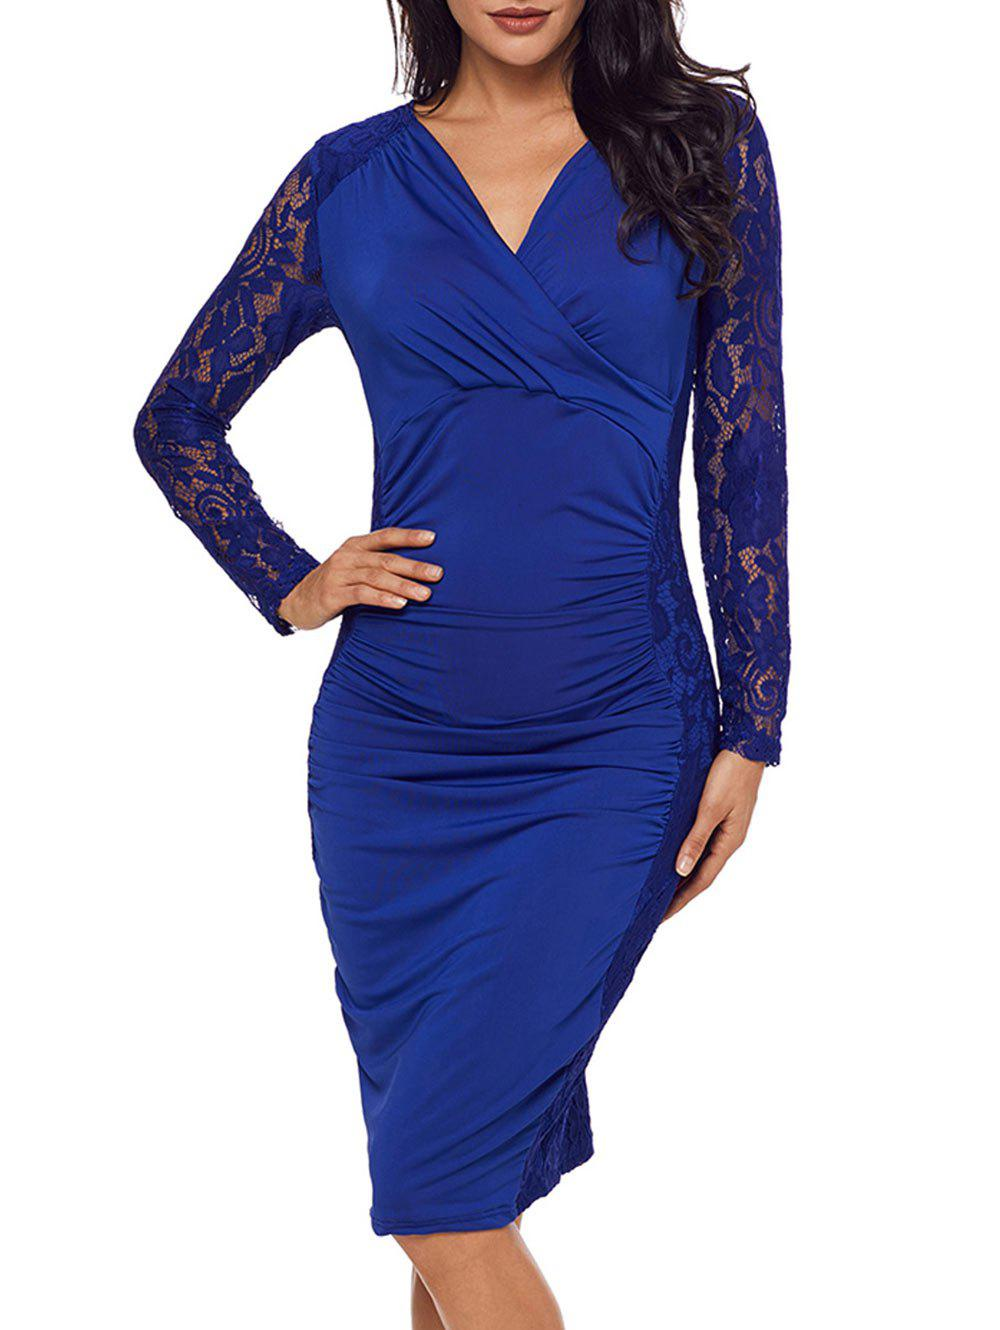 Lace Panel Surplice Neck Bodycon Dress - BLUE XL